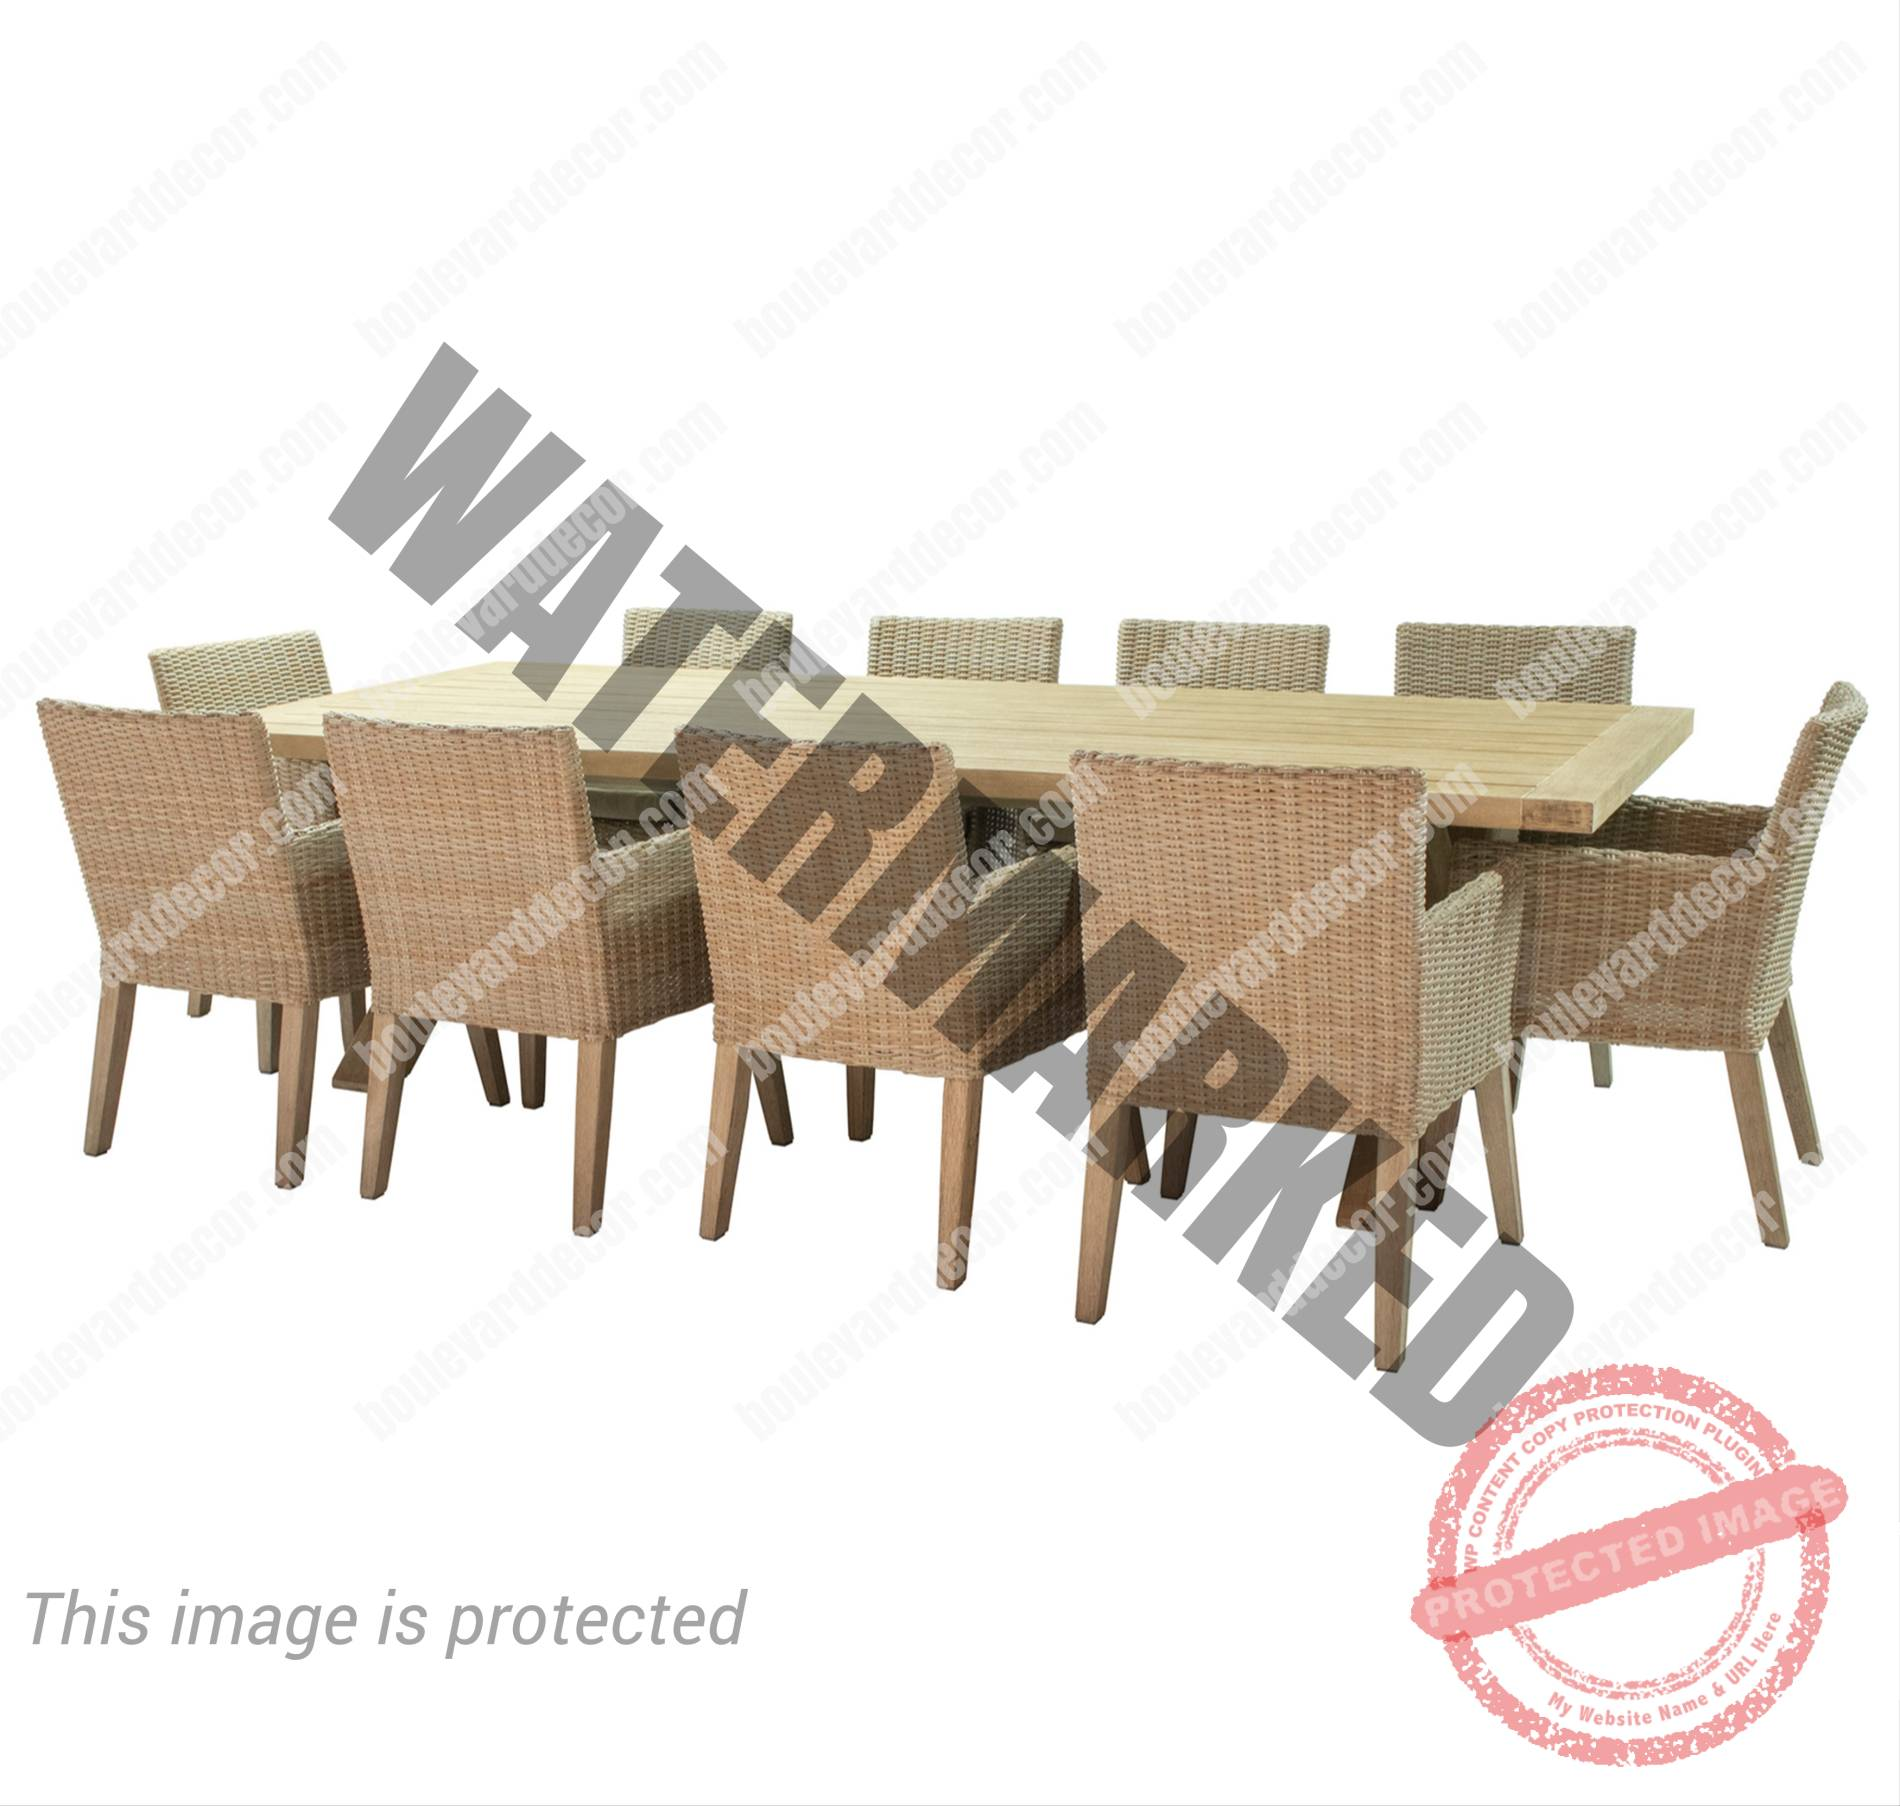 Gryphon 10 Seater Dining Set